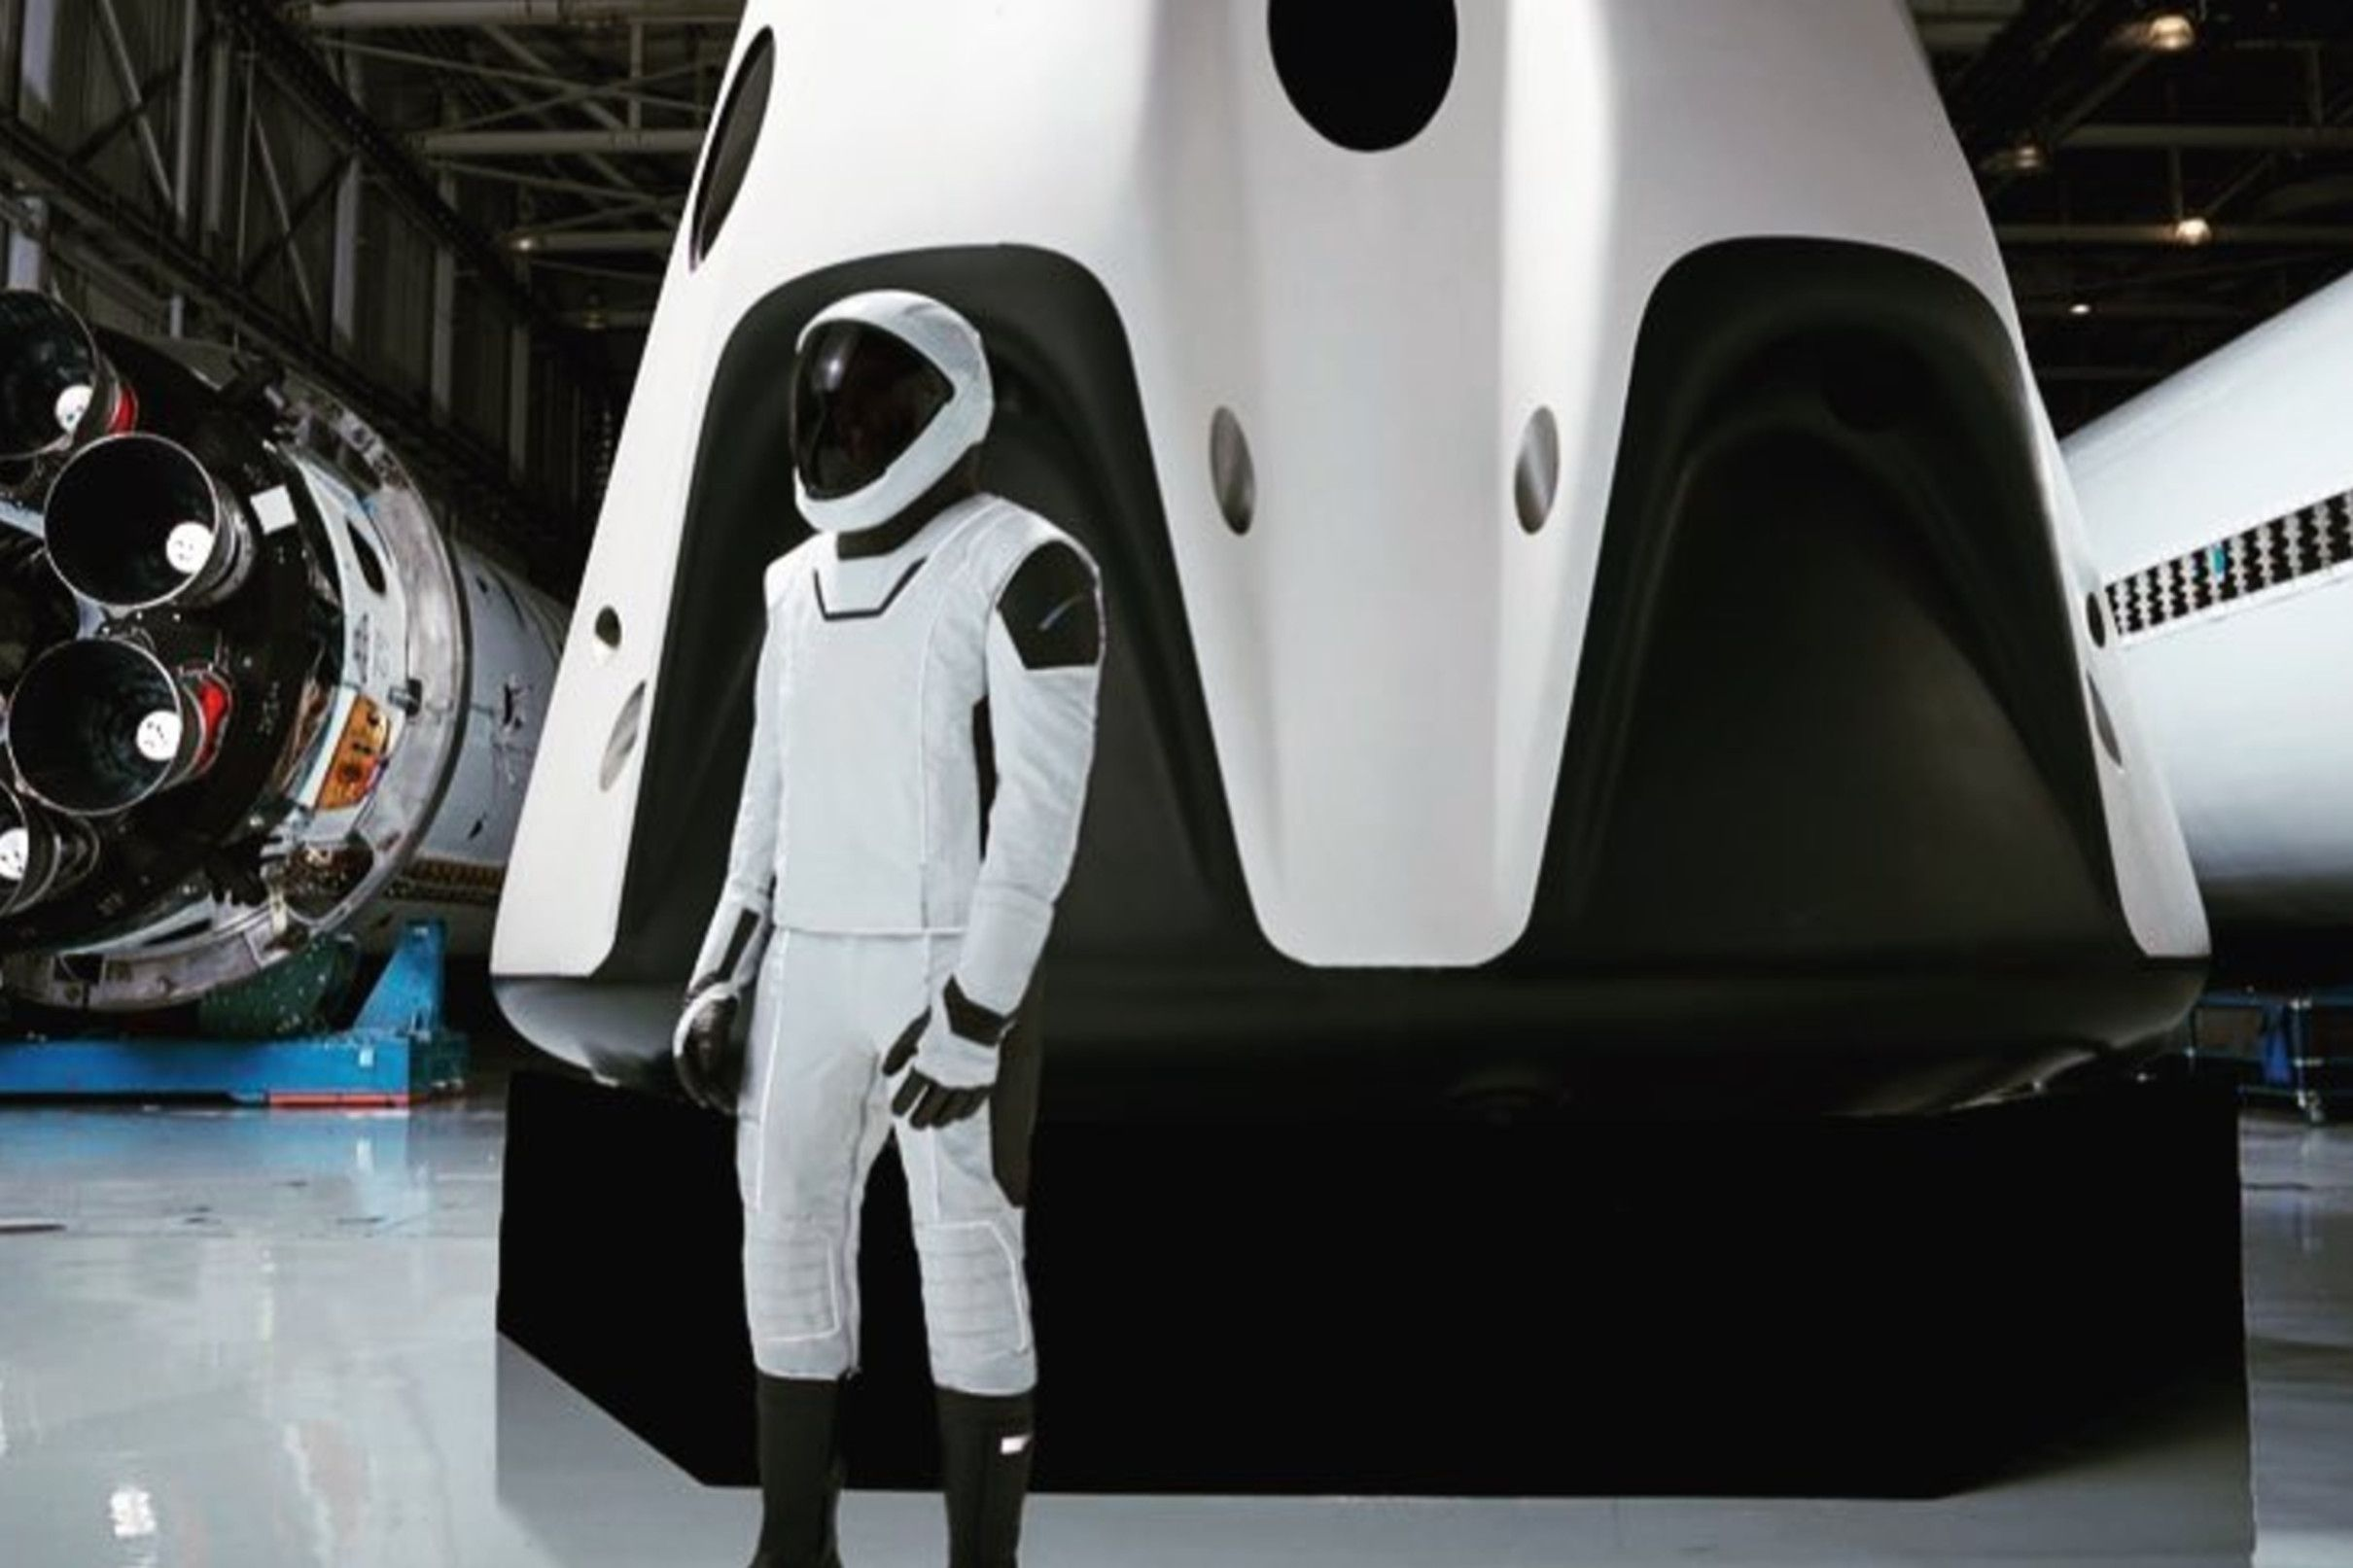 SpaceX Plan To Make New Sexy Spacesuits recommend